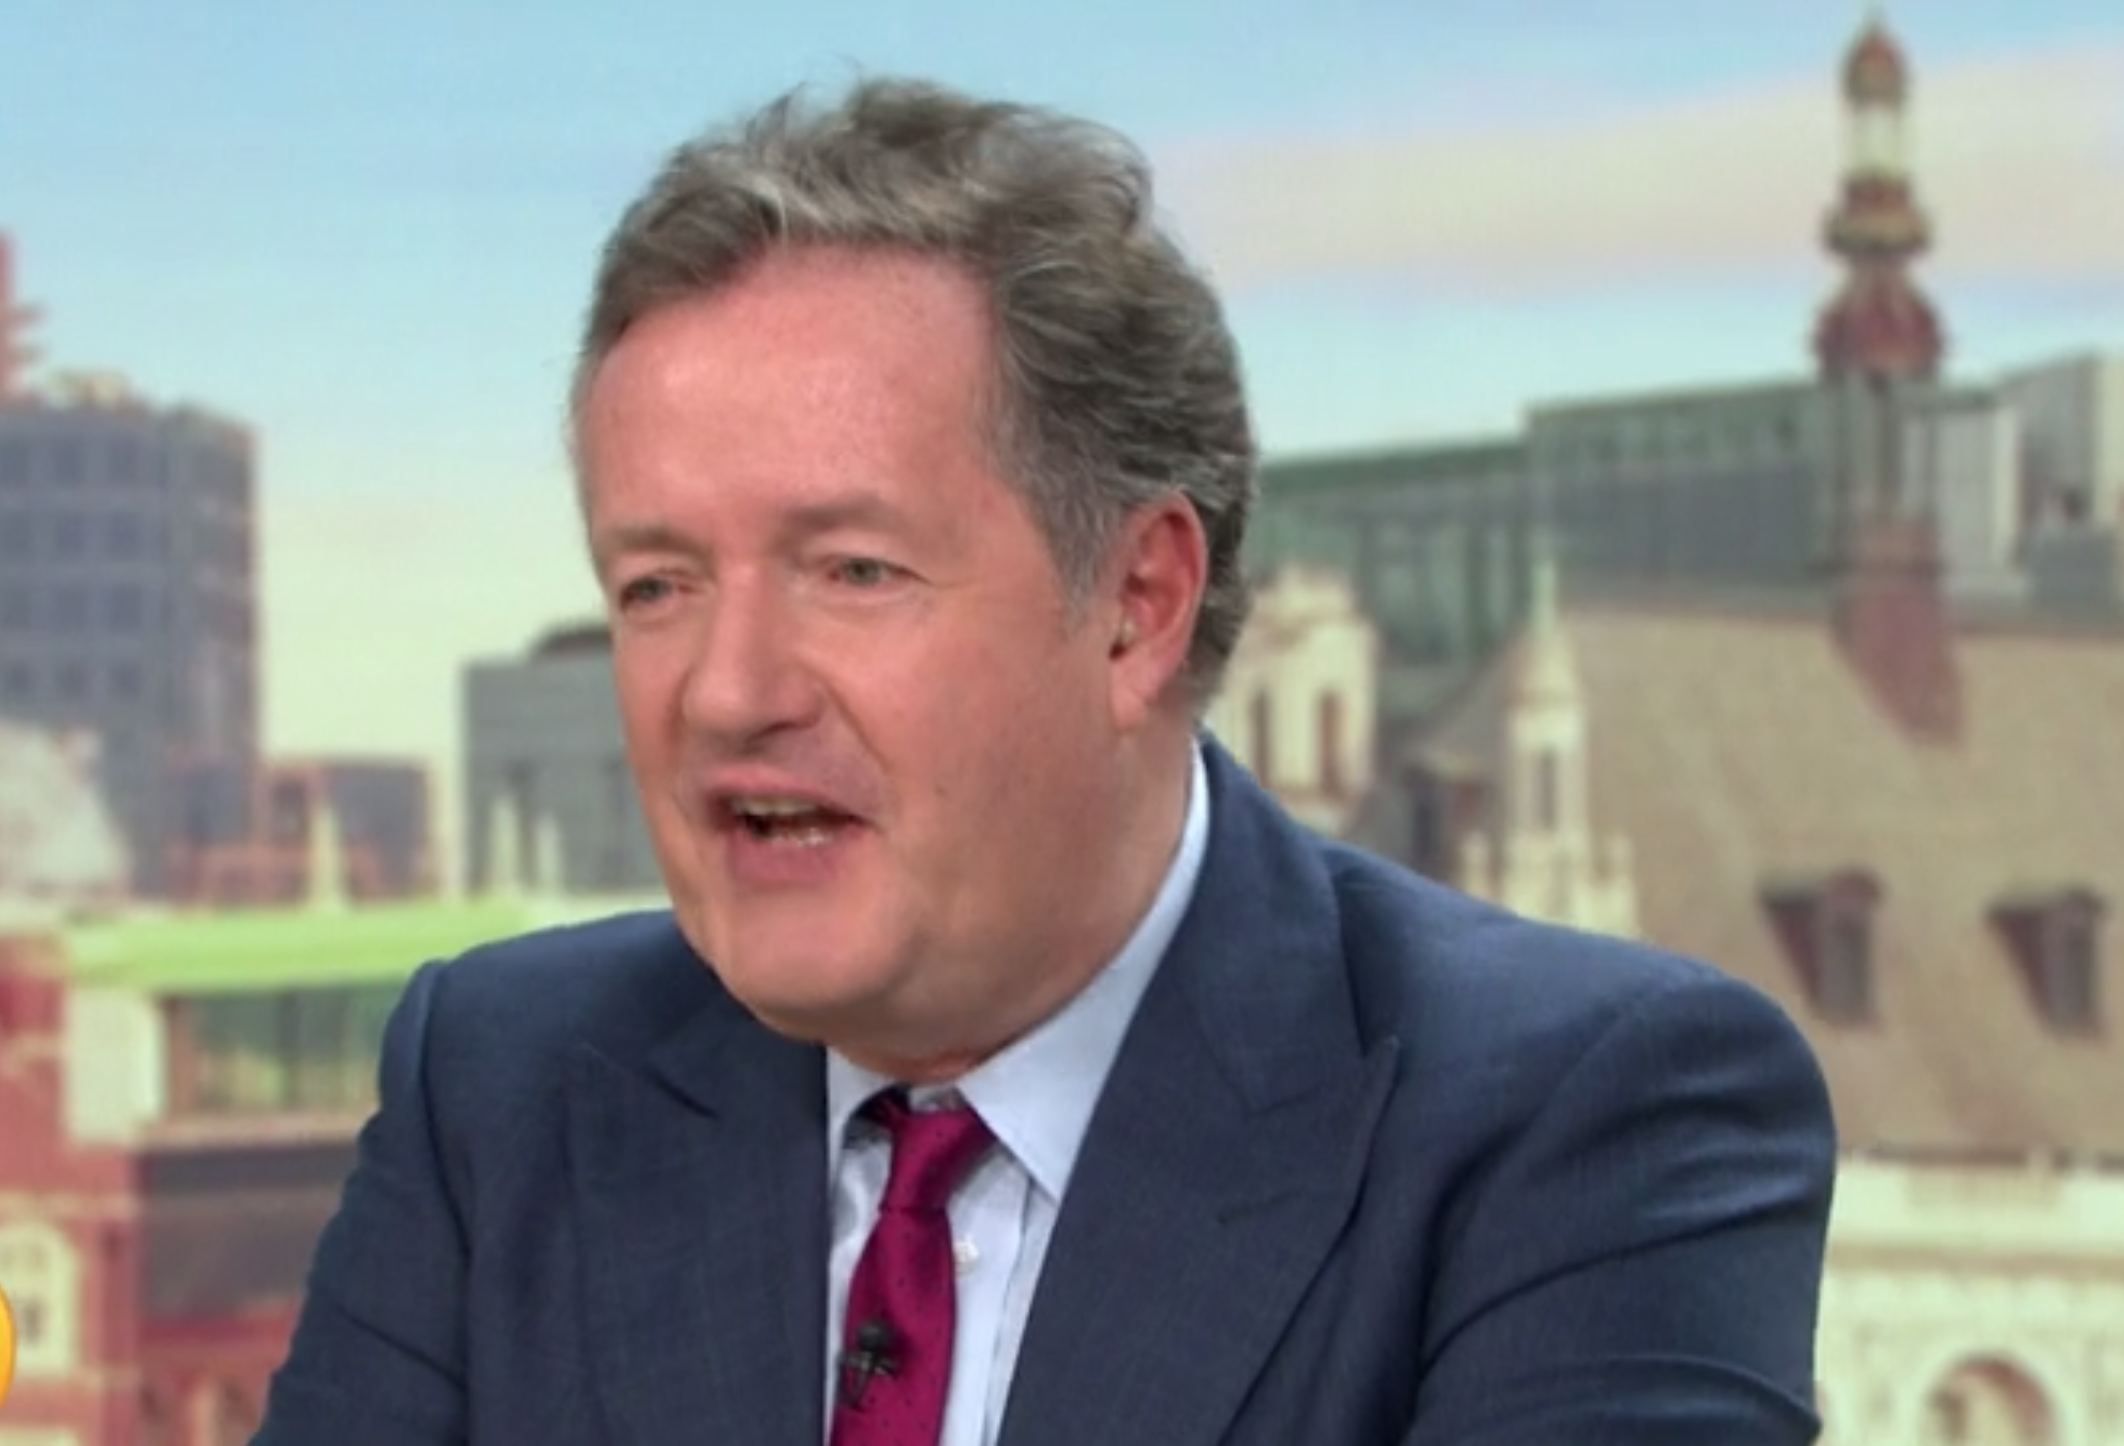 Piers Morgan rips into Love Island's Jack Fincham over his GMB presenting skills while replacing ill Andi Peters